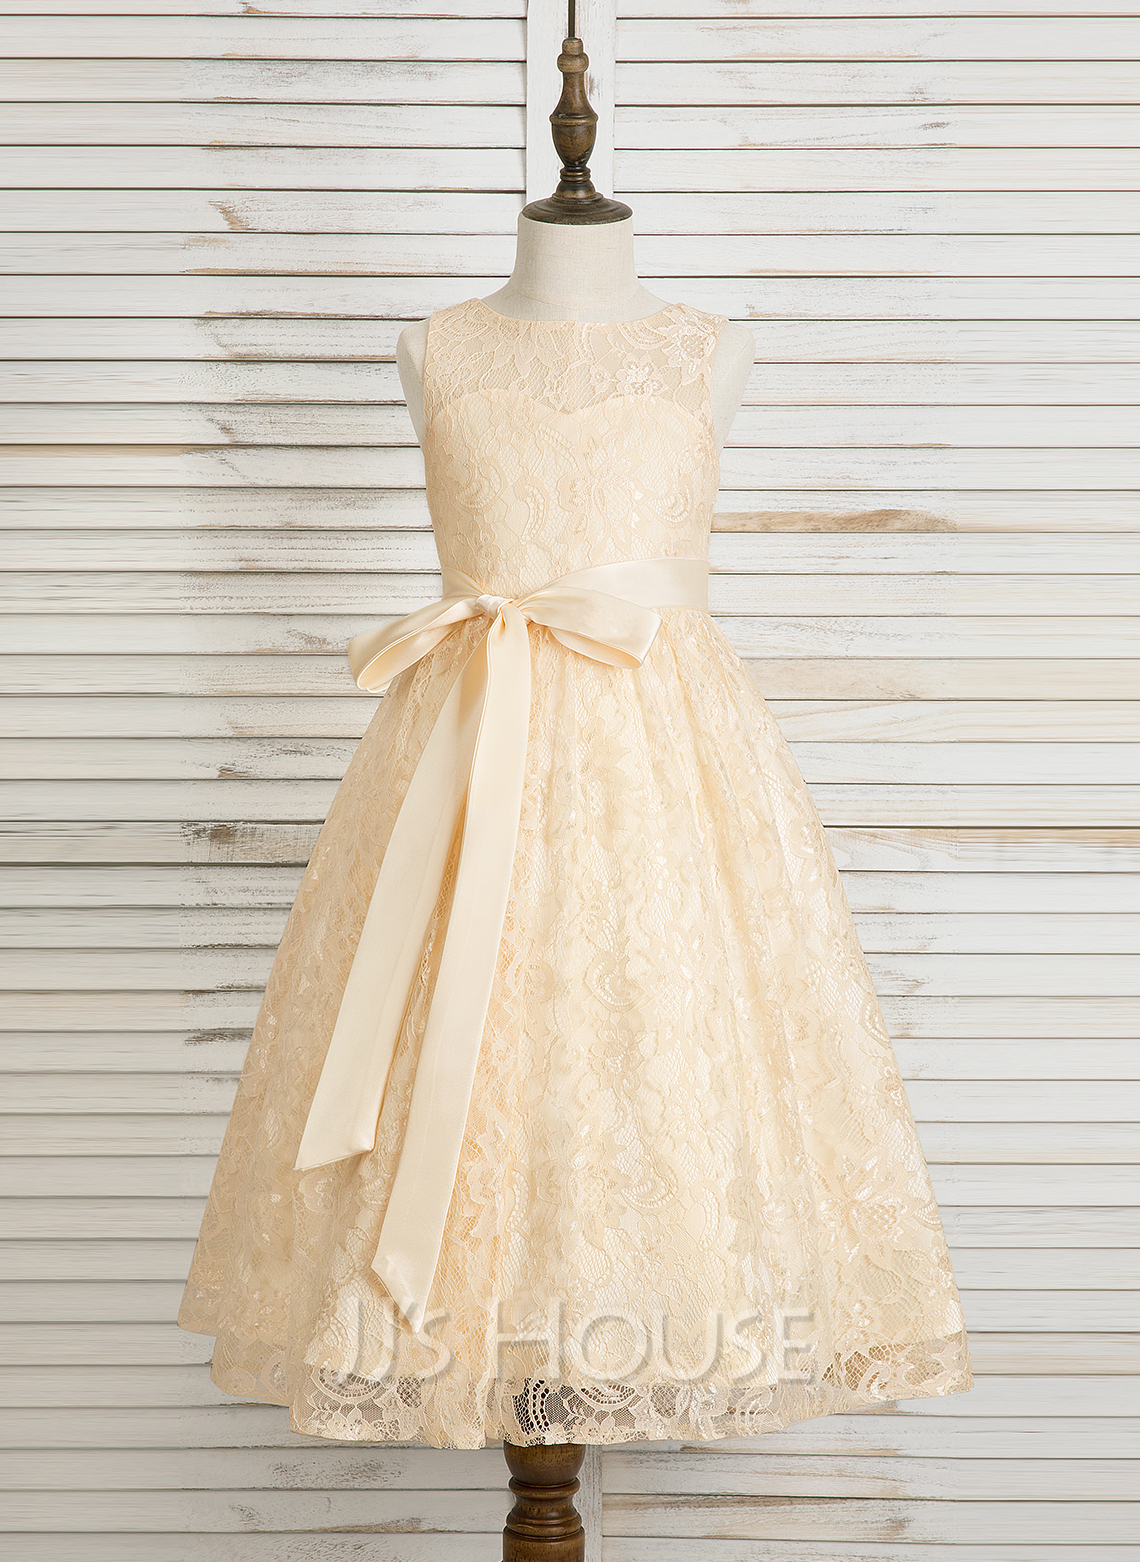 A-Line/Princess Tea-length Flower Girl Dress - Lace Sleeveless Scoop Neck With Bow(s)/Back Hole